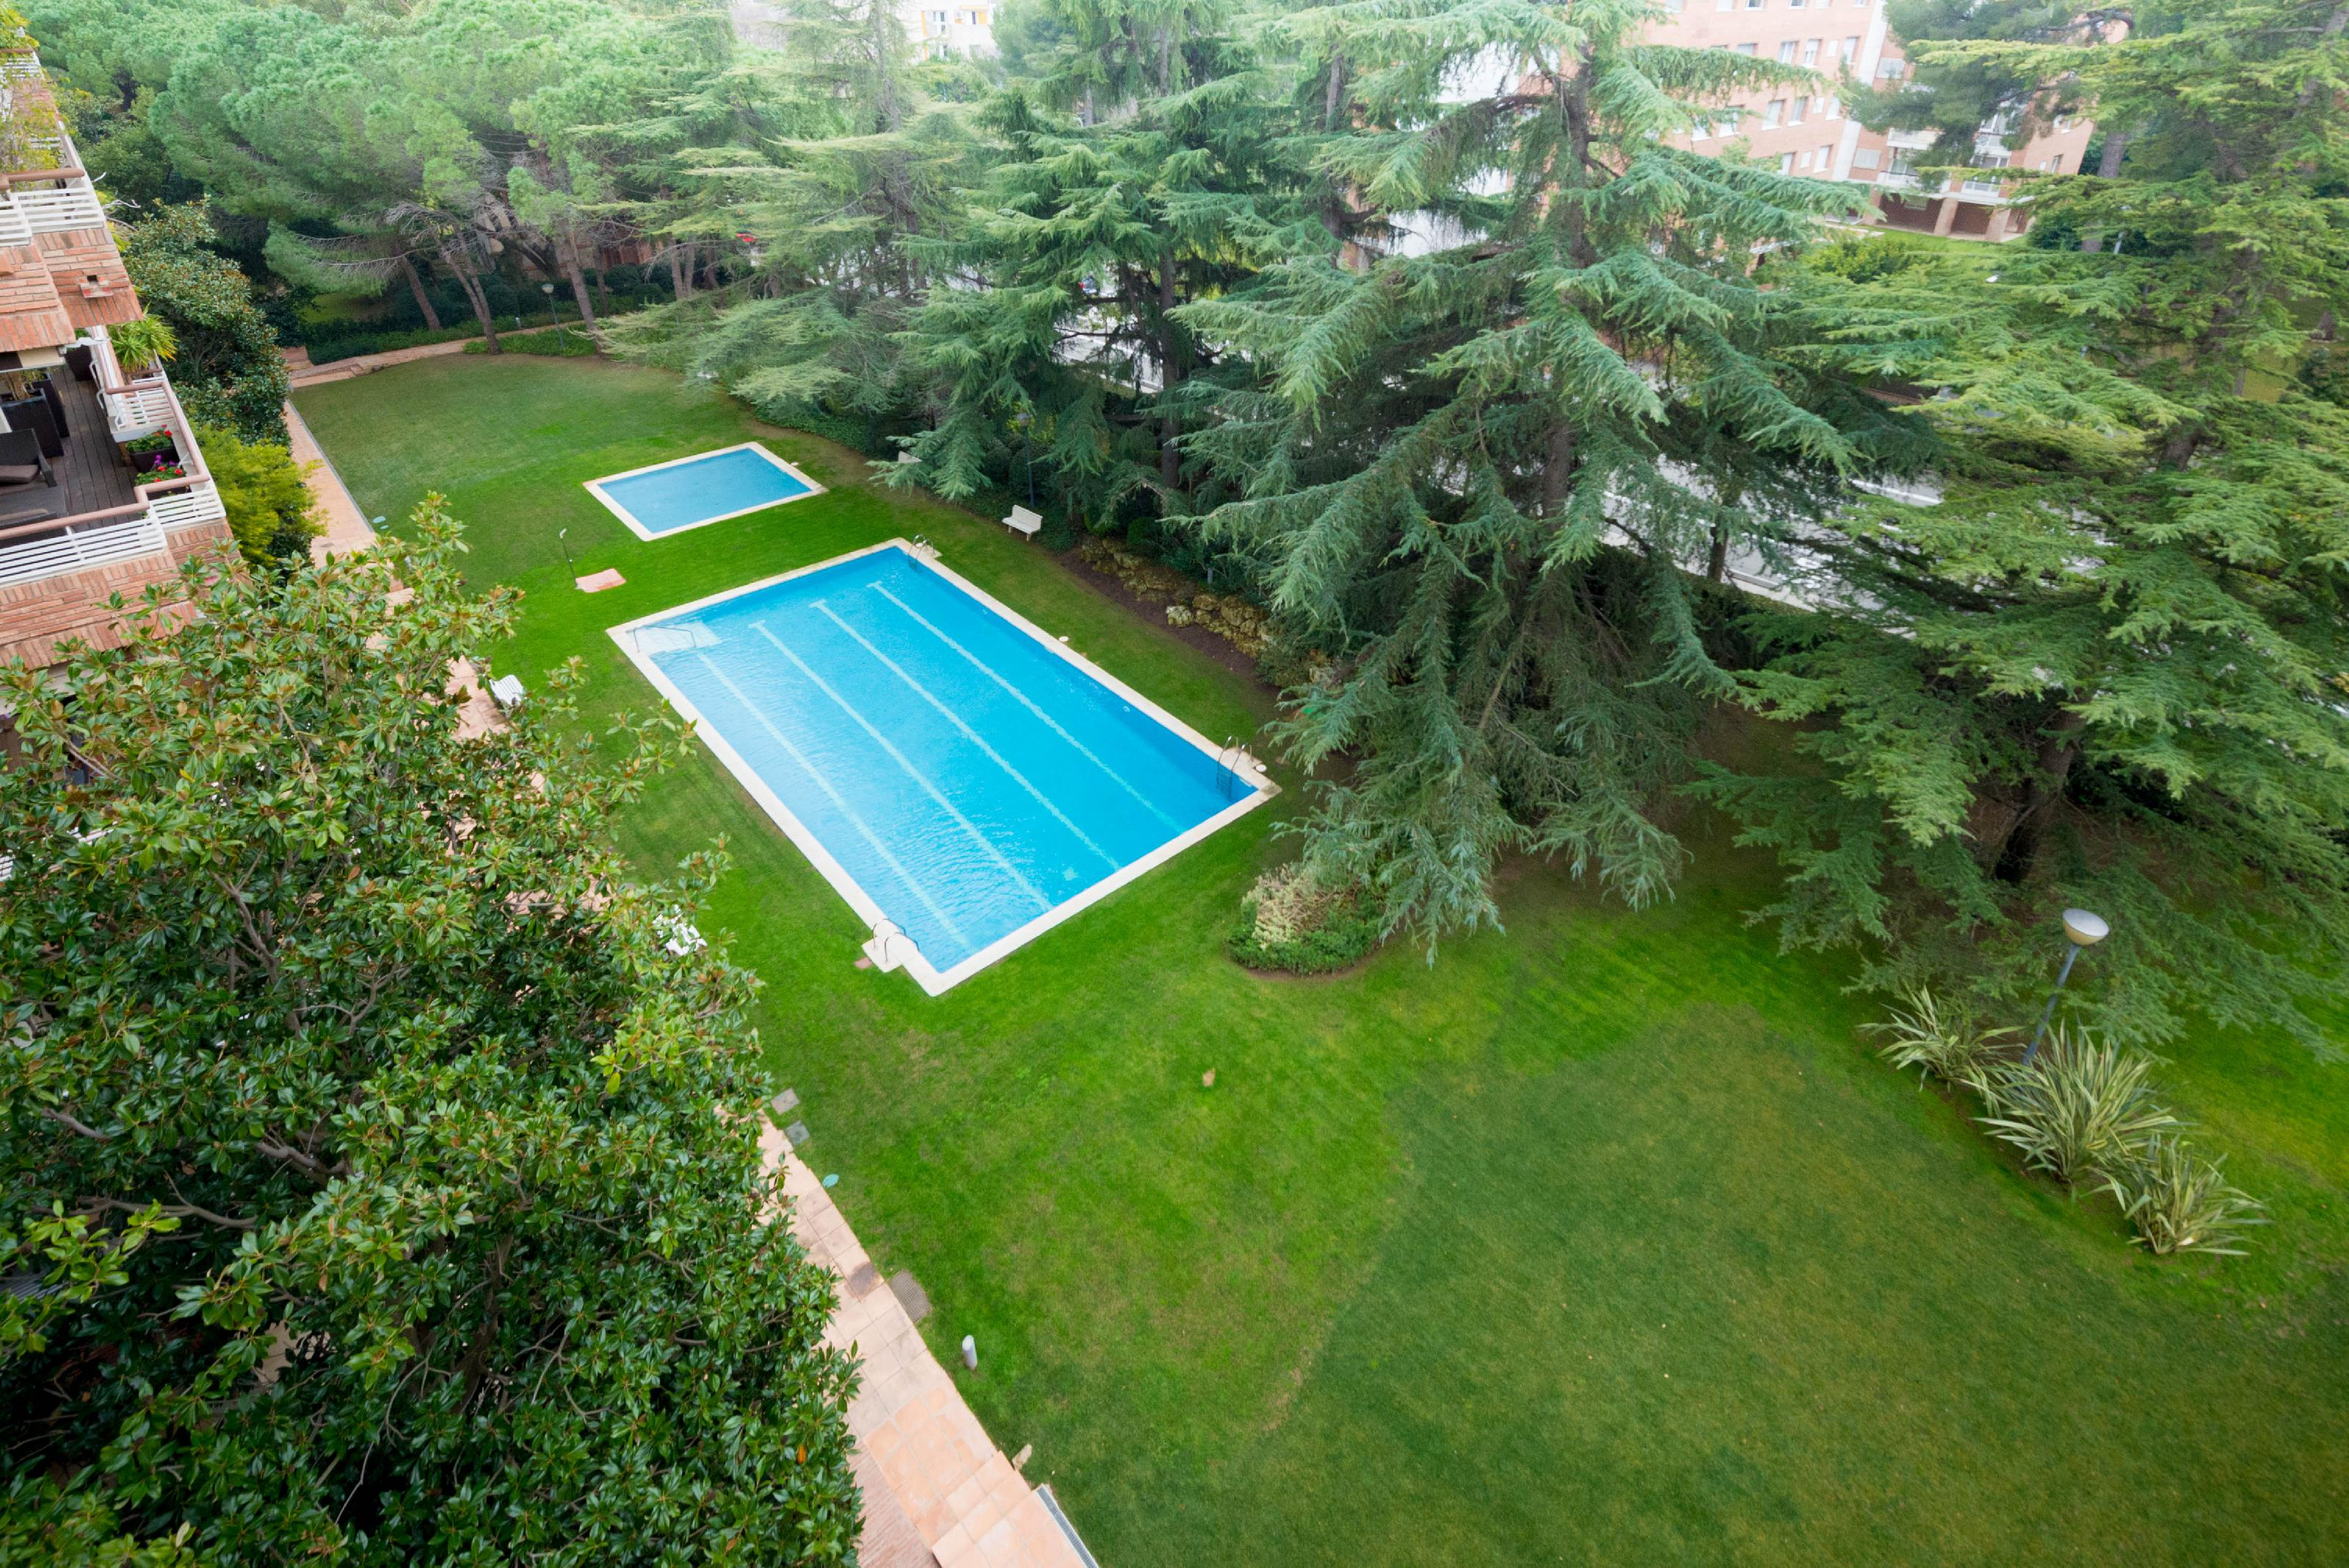 245495 Penthouse for sale in Les Corts, Pedralbes 1